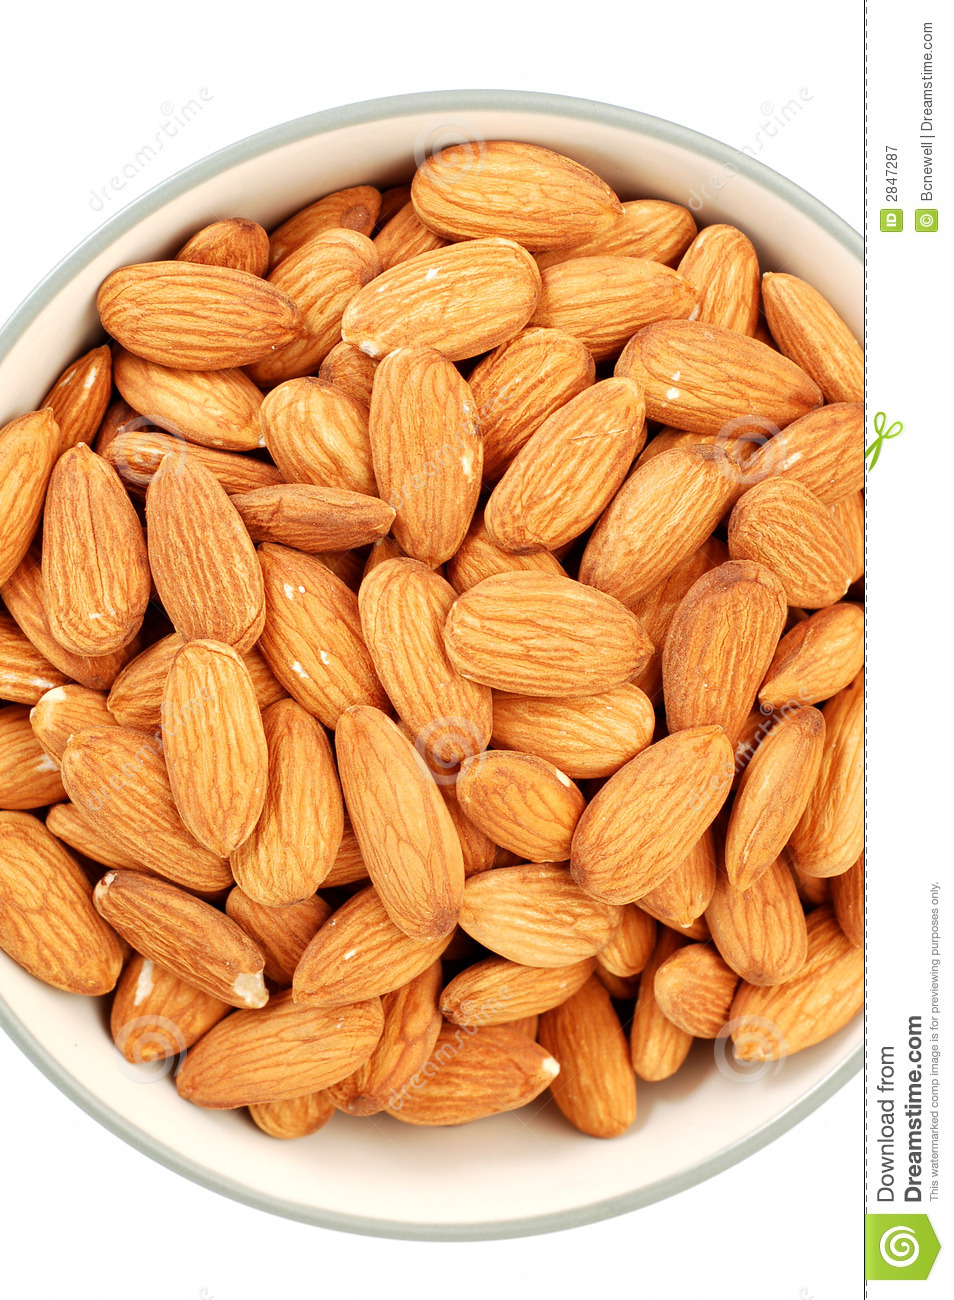 Bowl Of Almonds Royalty Free Stock Photography - Image ...